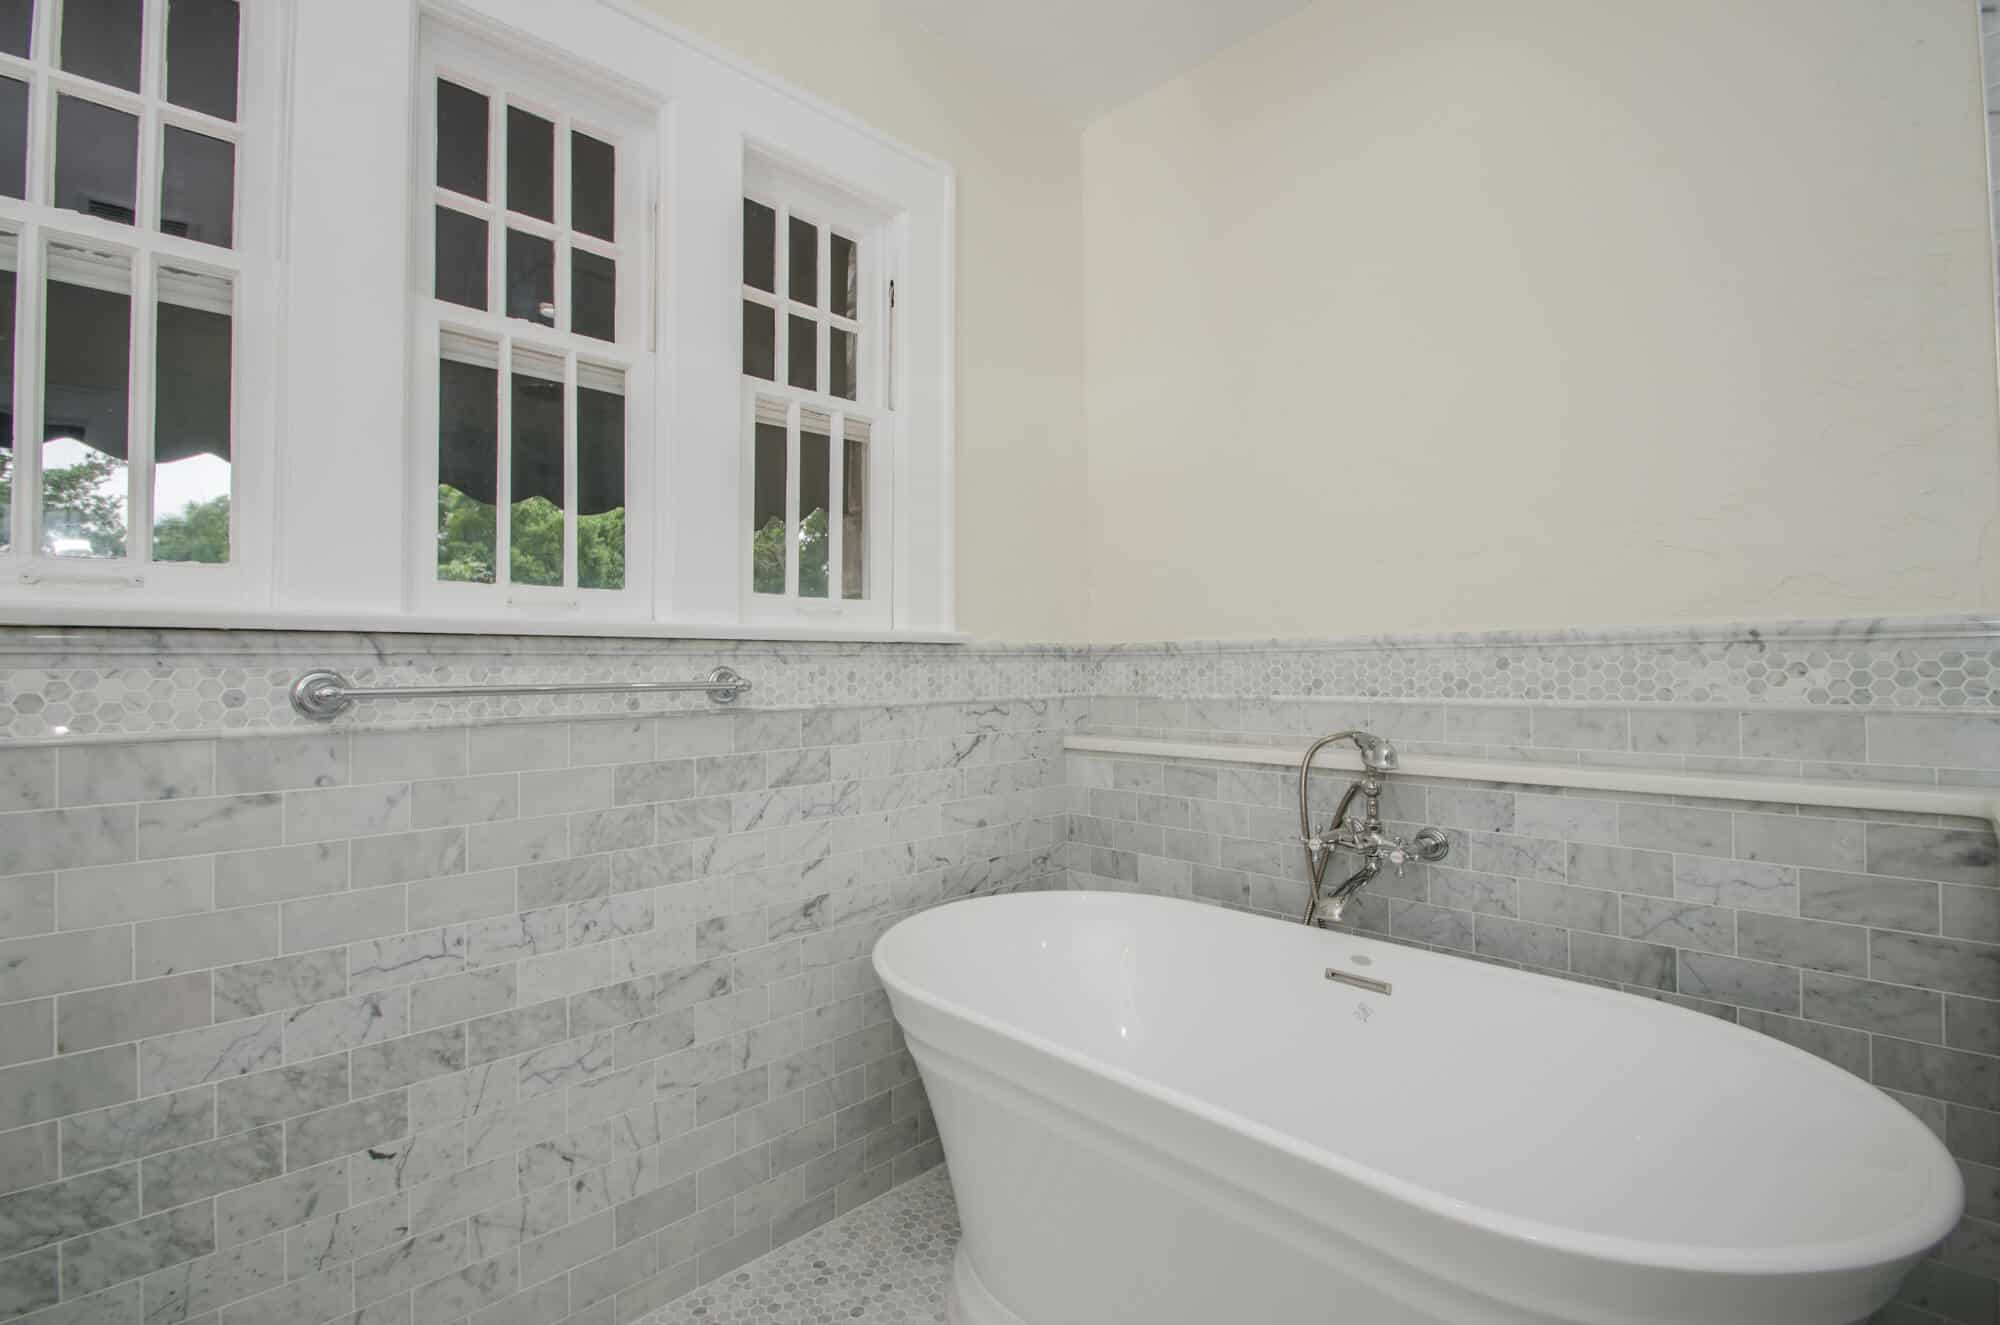 vintage style bath remodel featuring marble walls